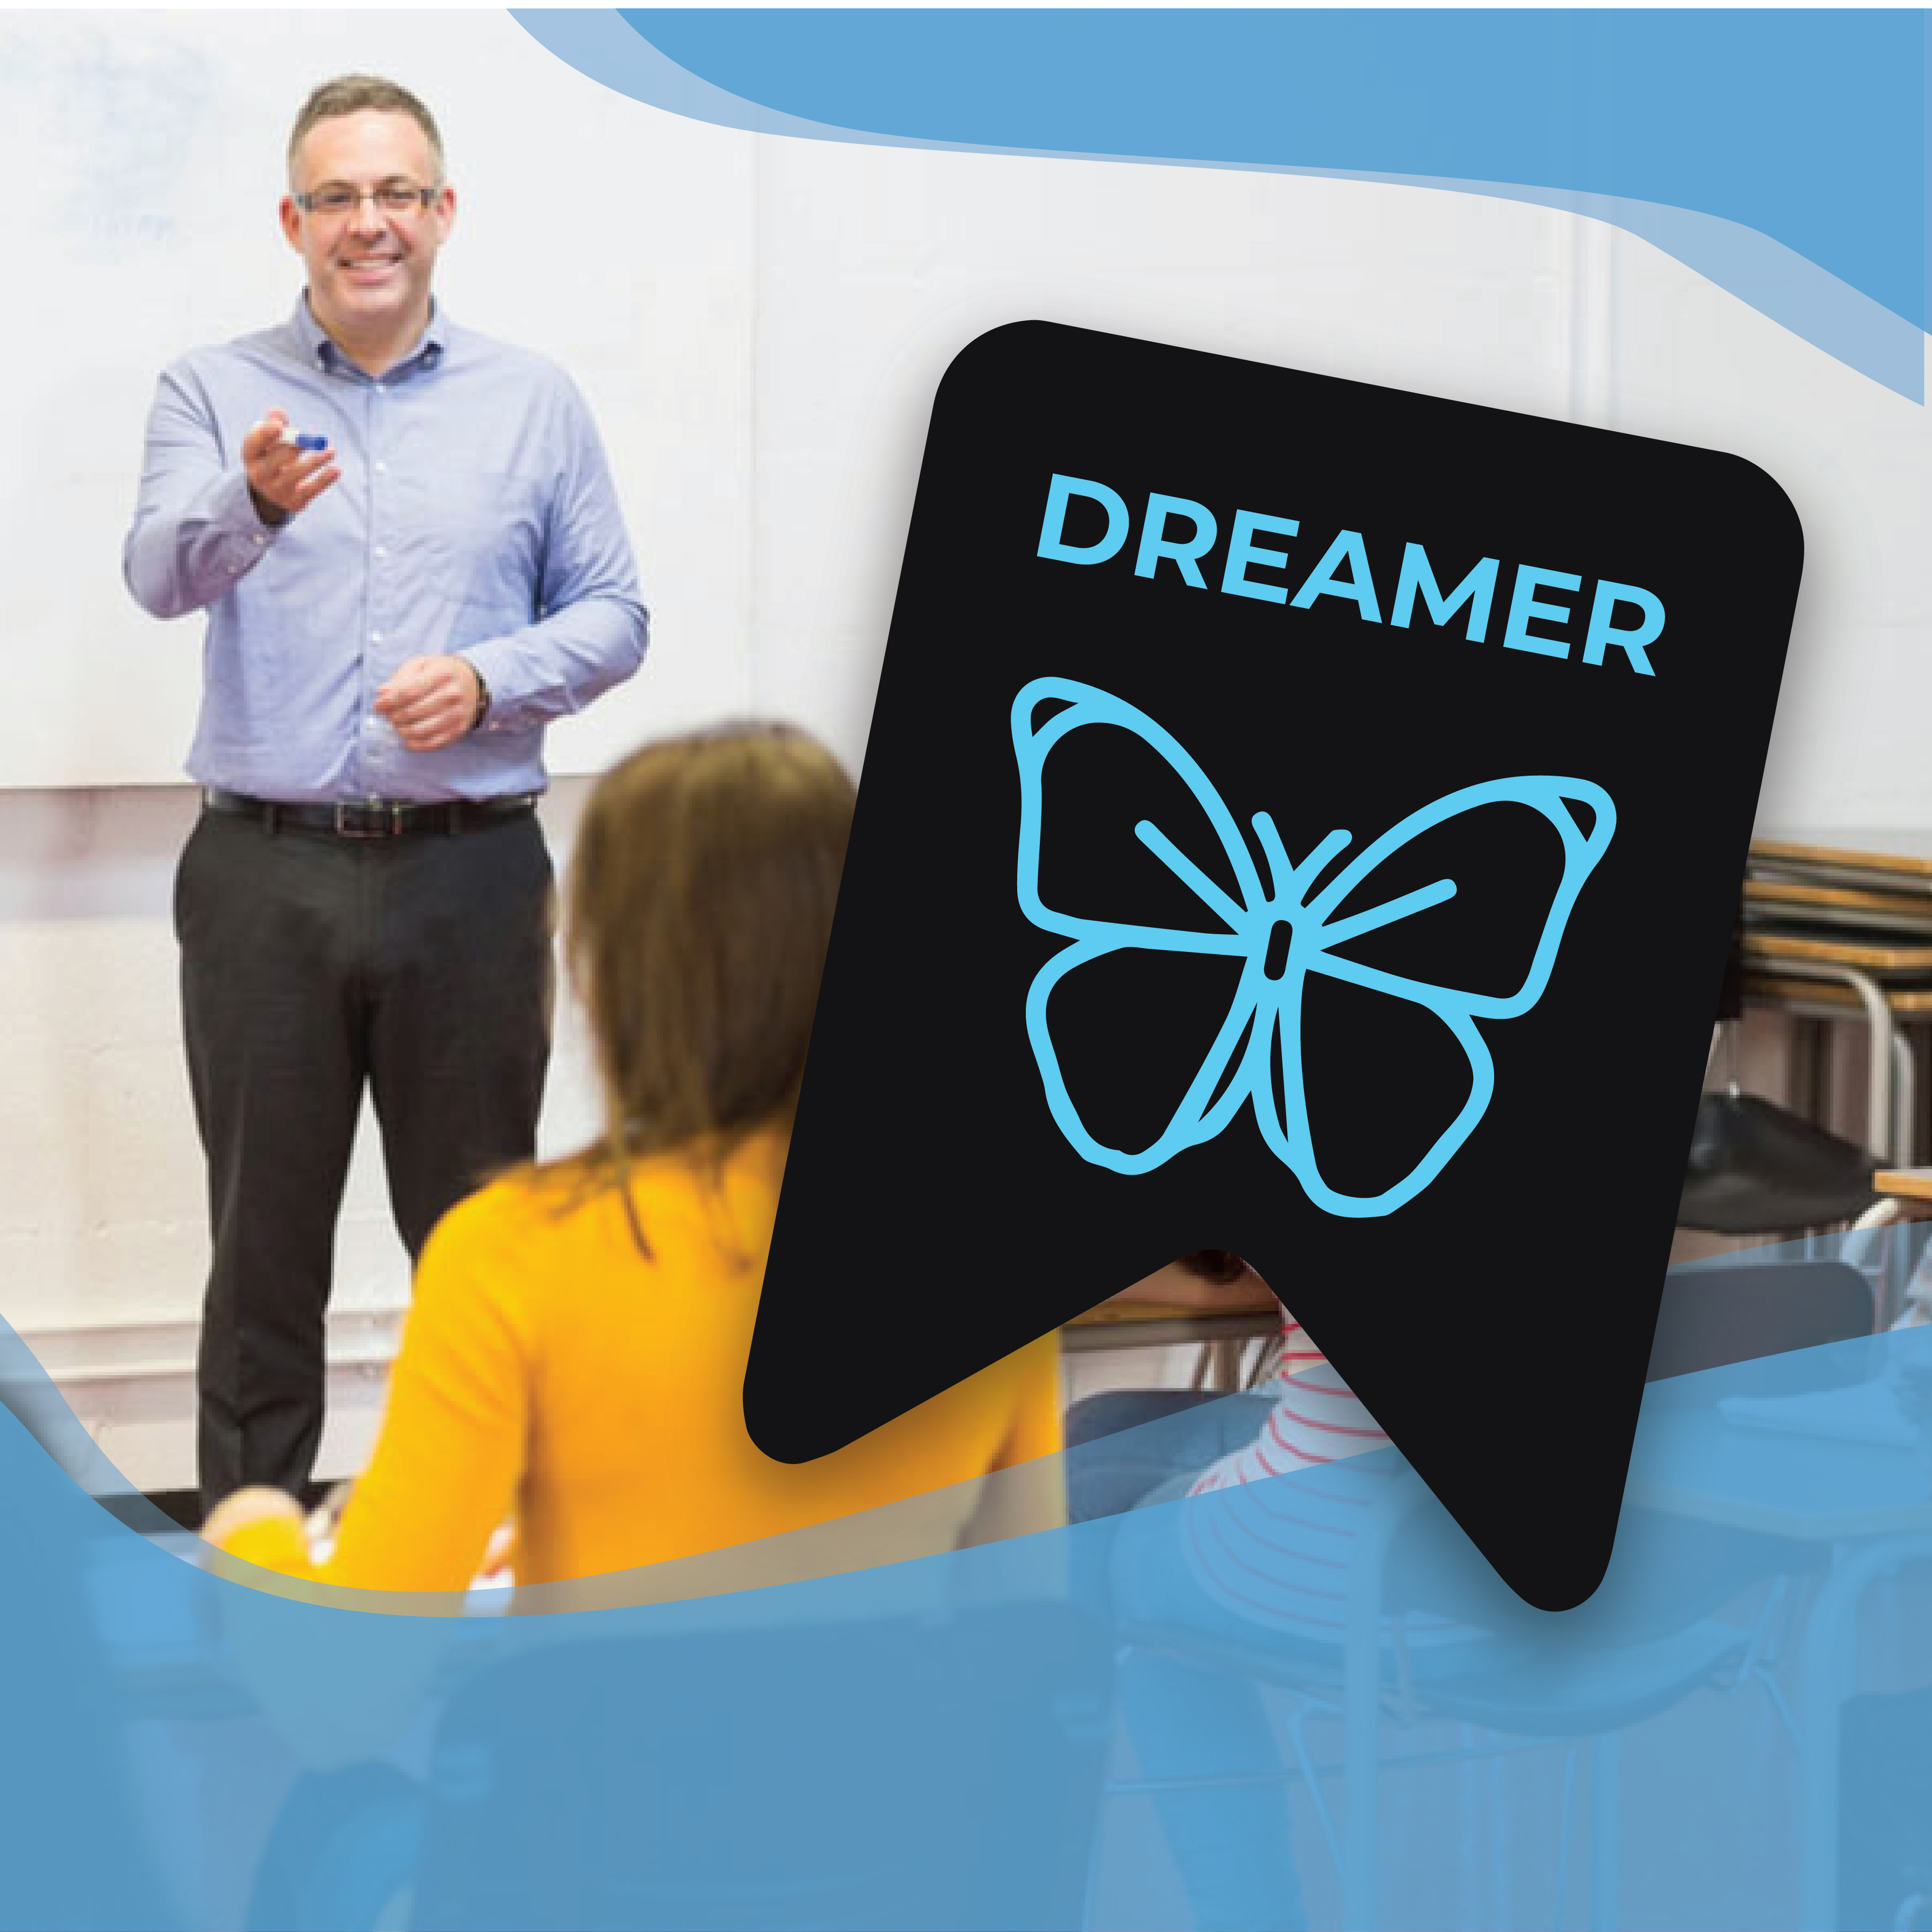 Seen here is our equity badge for Dreamers that teachers can wear around campus to show their support to help undocumented students achieve their academic goals.